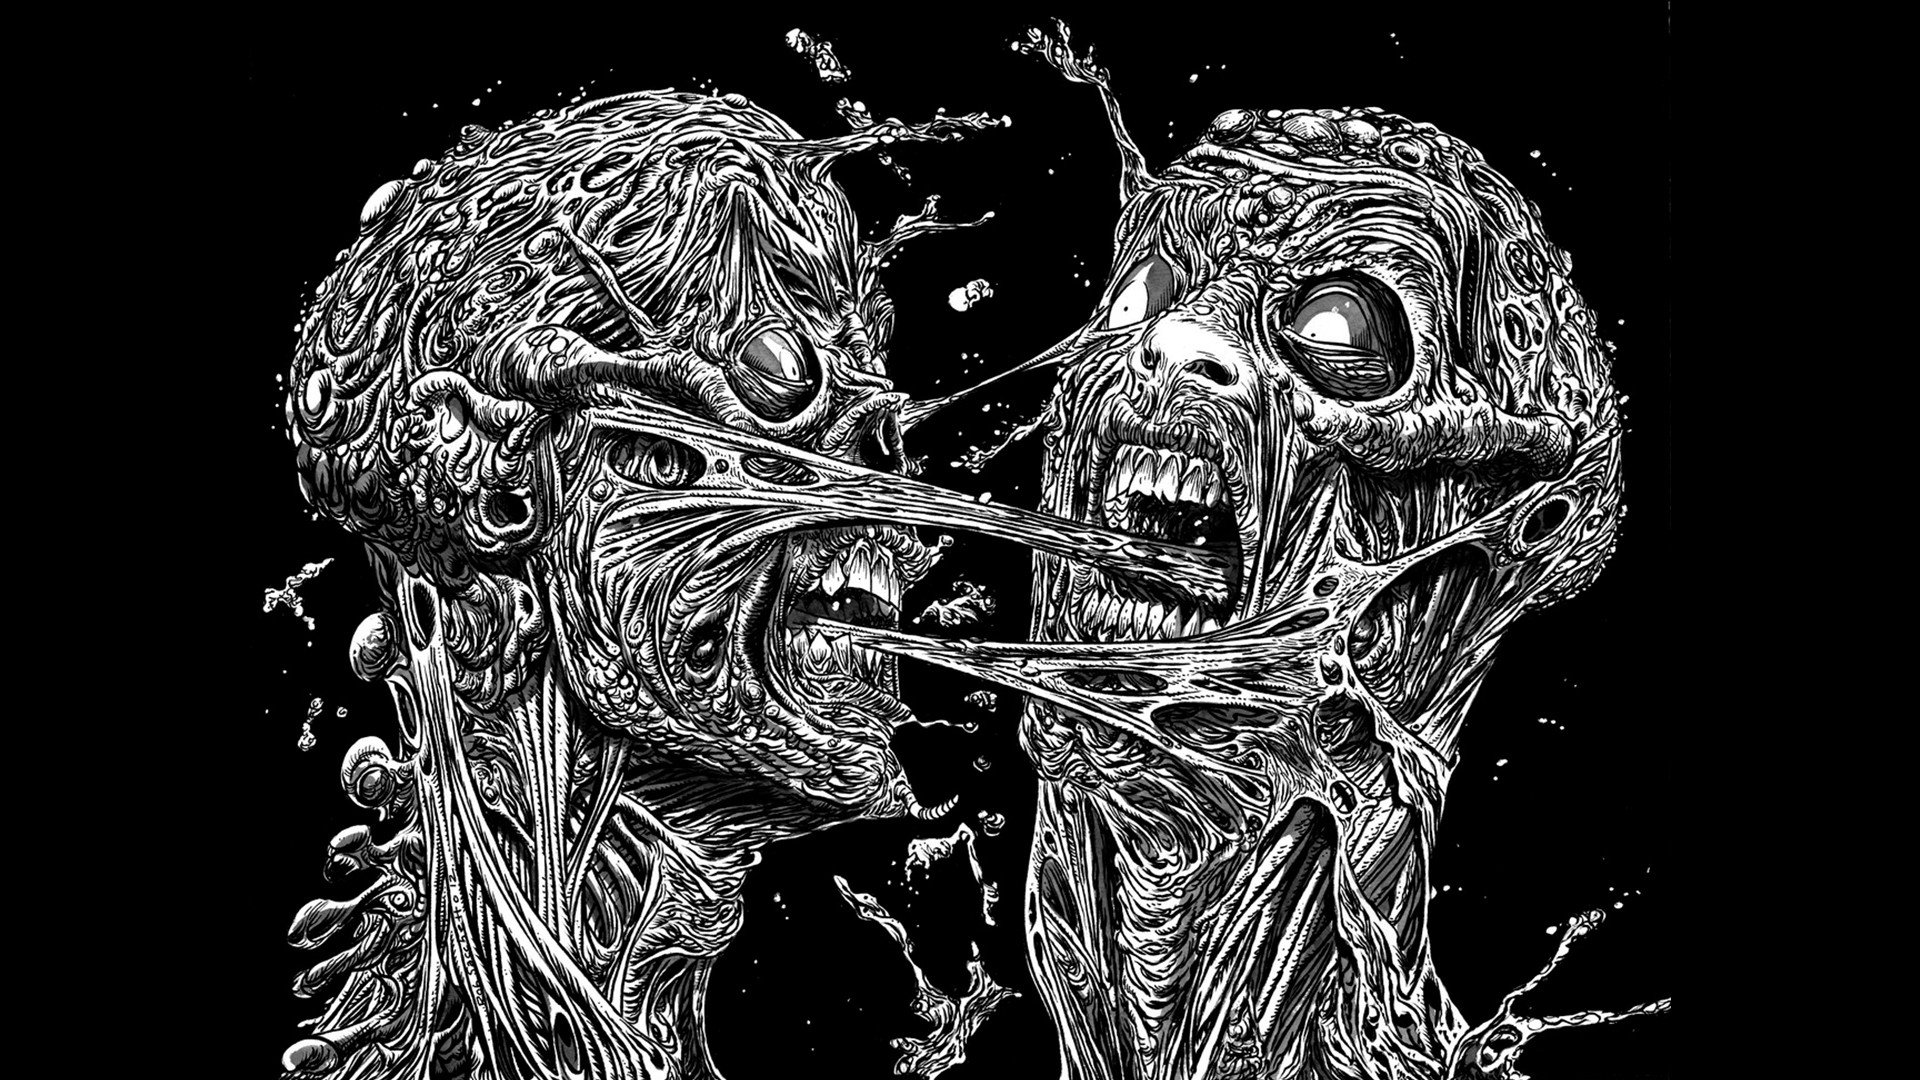 Zombie Artwork Wallpaper Horror zombies artwork...